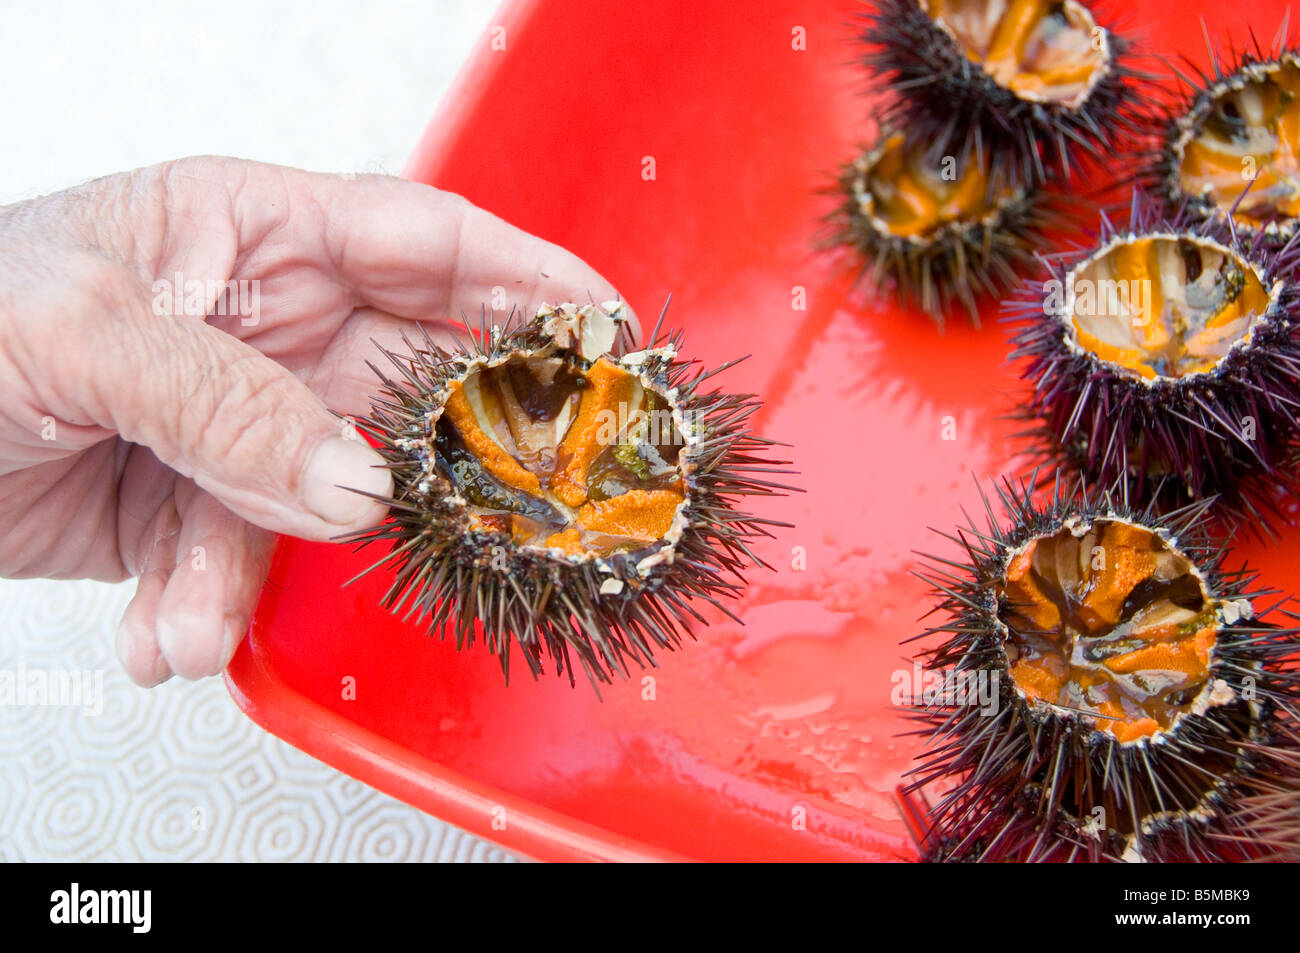 Hand holding sea urchin up close. - Stock Image